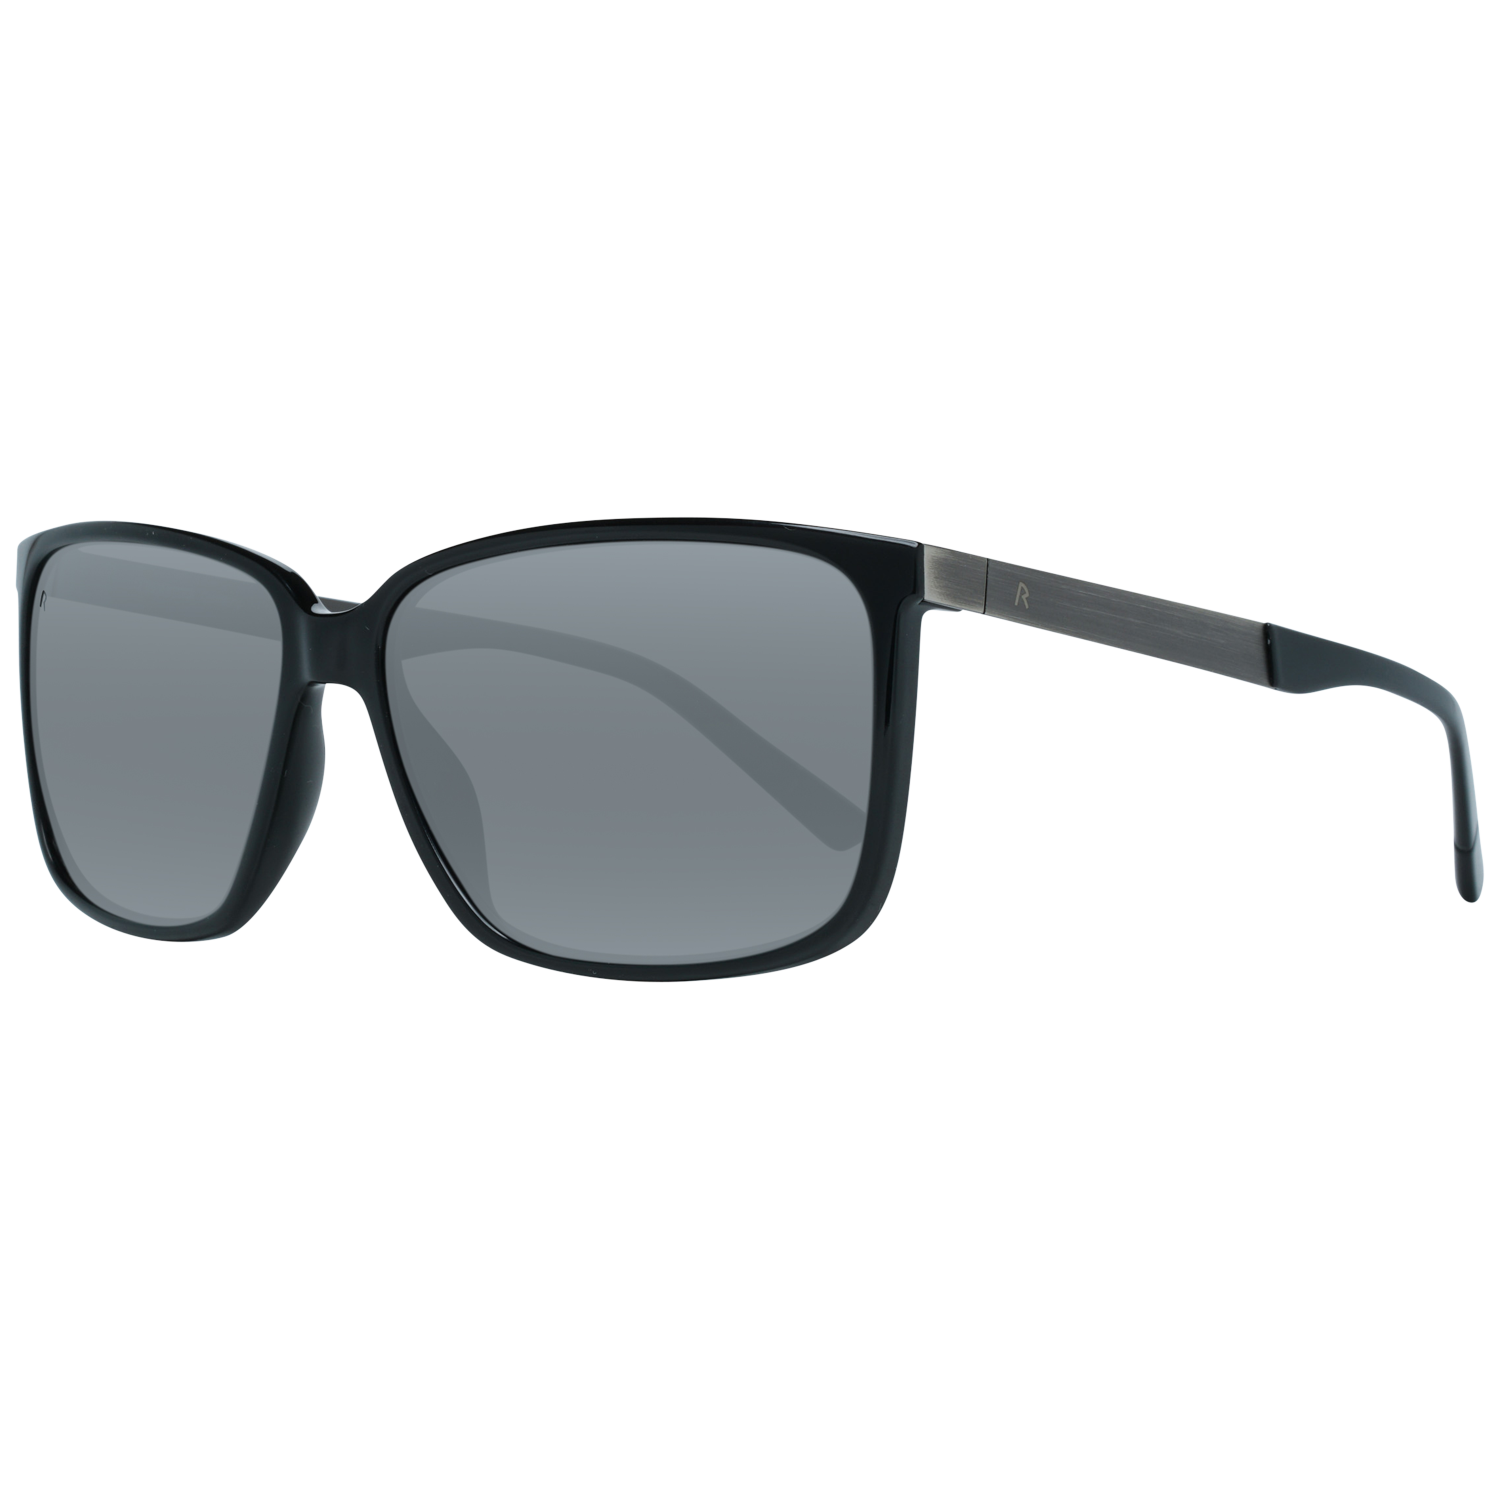 Rodenstock Sunglasses R3295 A 60 Black